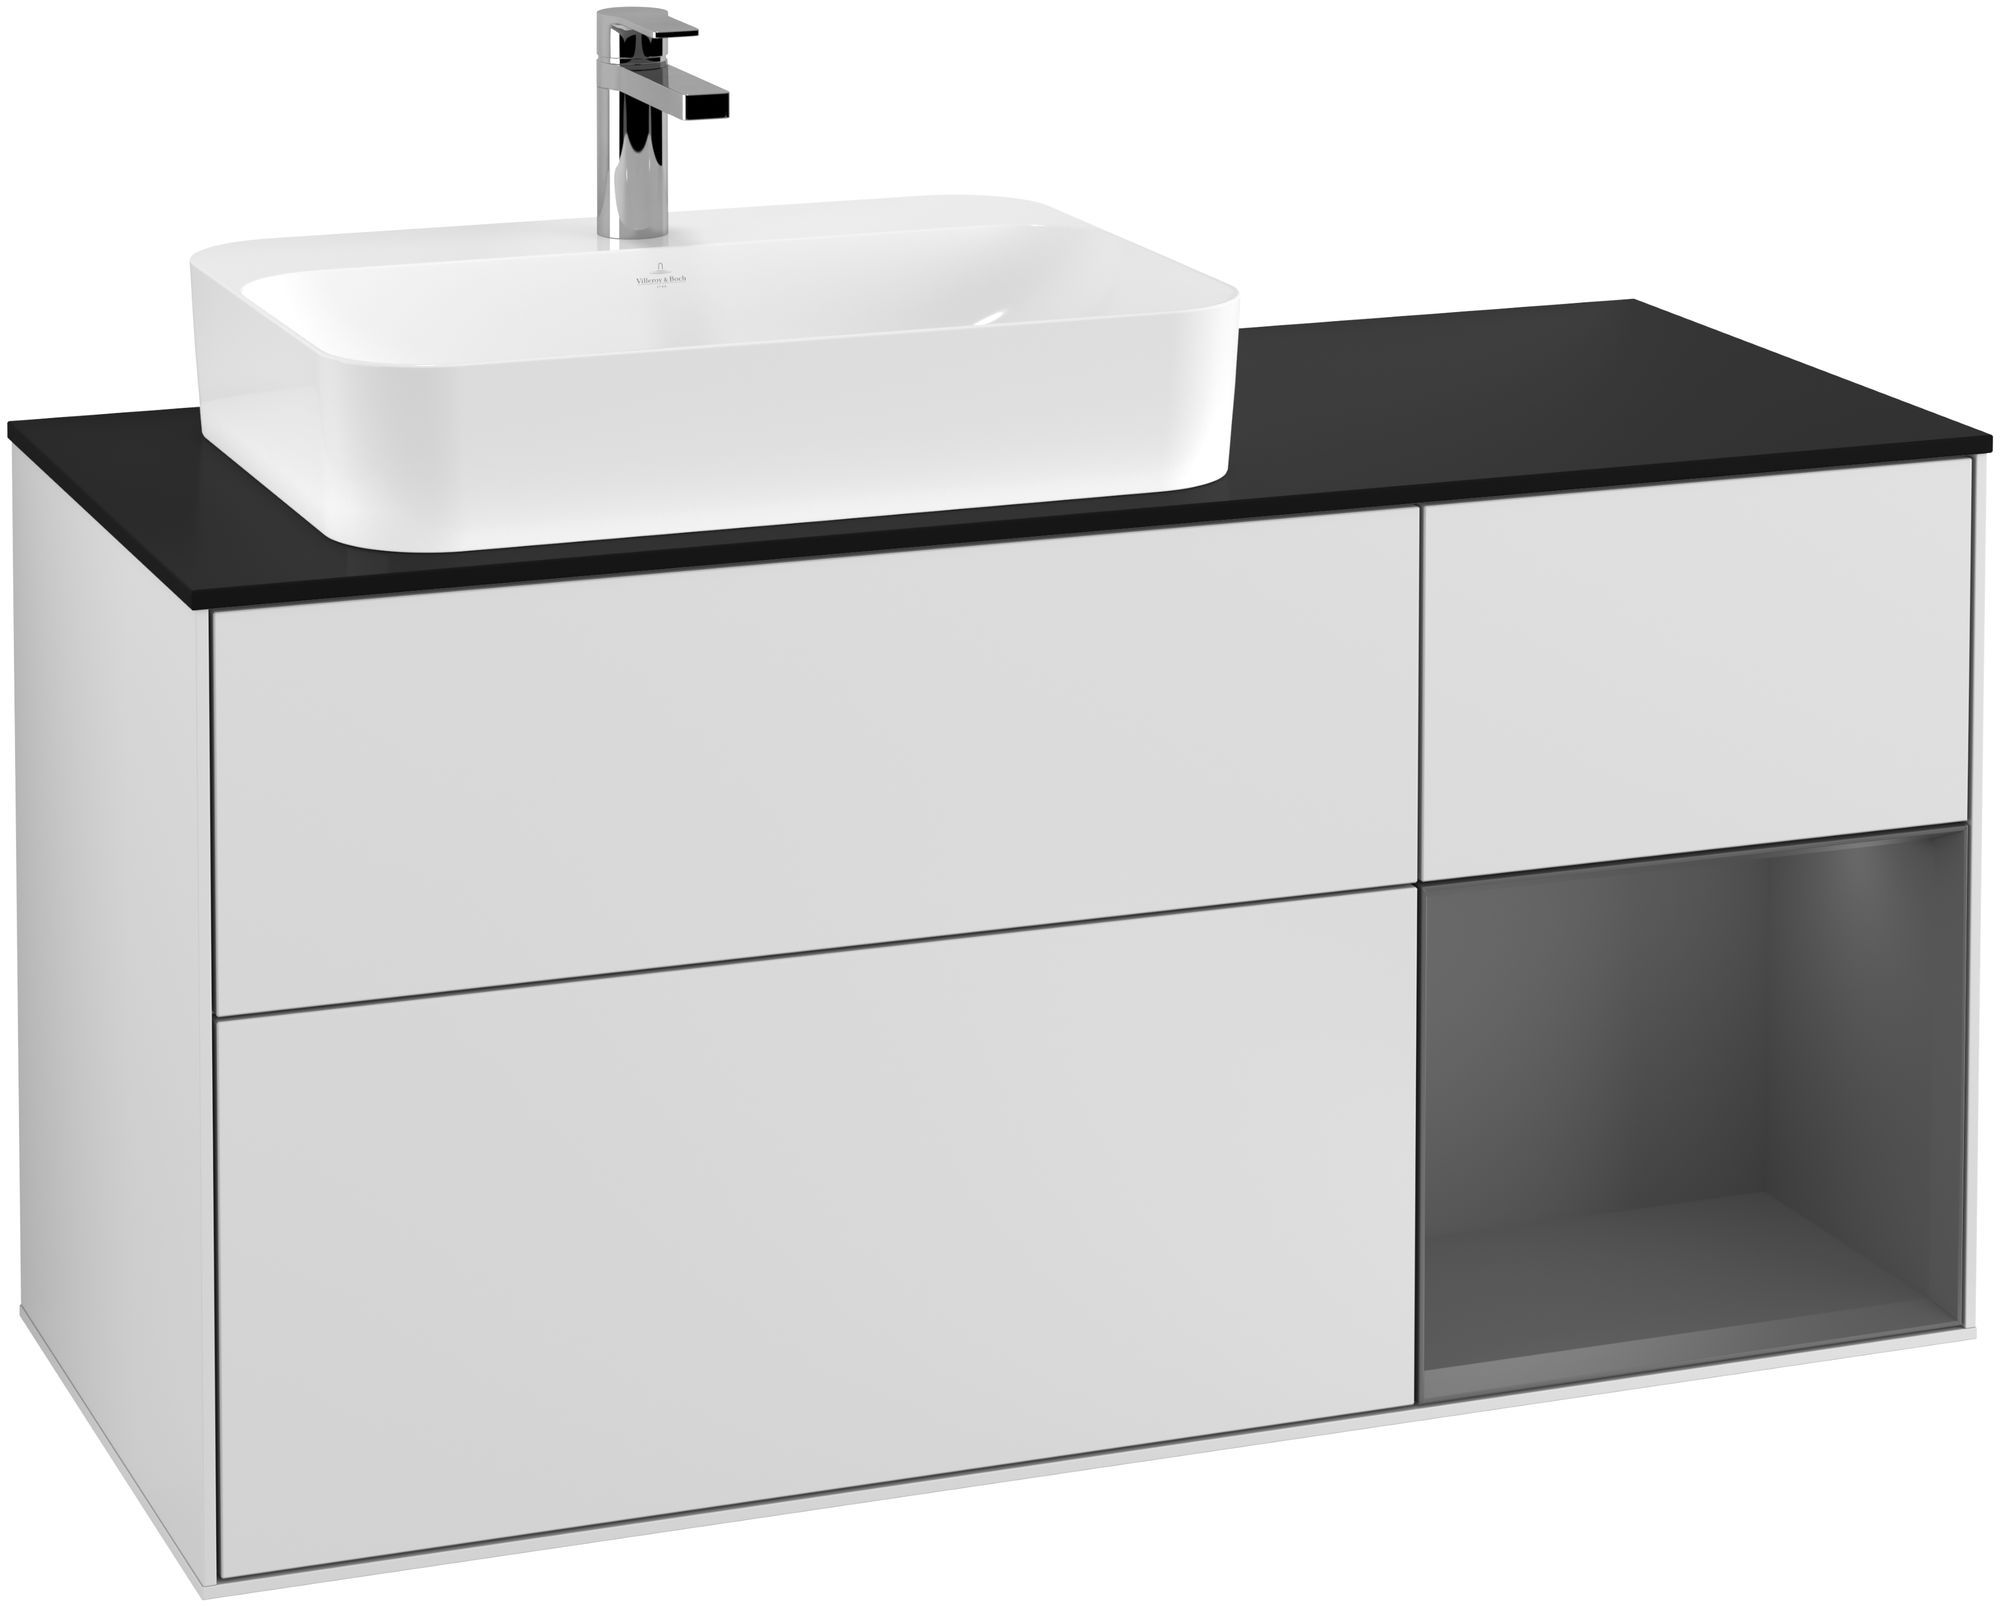 Villeroy & Boch Finion G40 Waschtischunterschrank mit Regalelement 3 Auszüge Waschtisch links LED-Beleuchtung B:120xH:60,3xT:50,1cm Front, Korpus: Weiß Matt Soft Grey, Regal: Anthracite Matt, Glasplatte: Black Matt G402GKMT